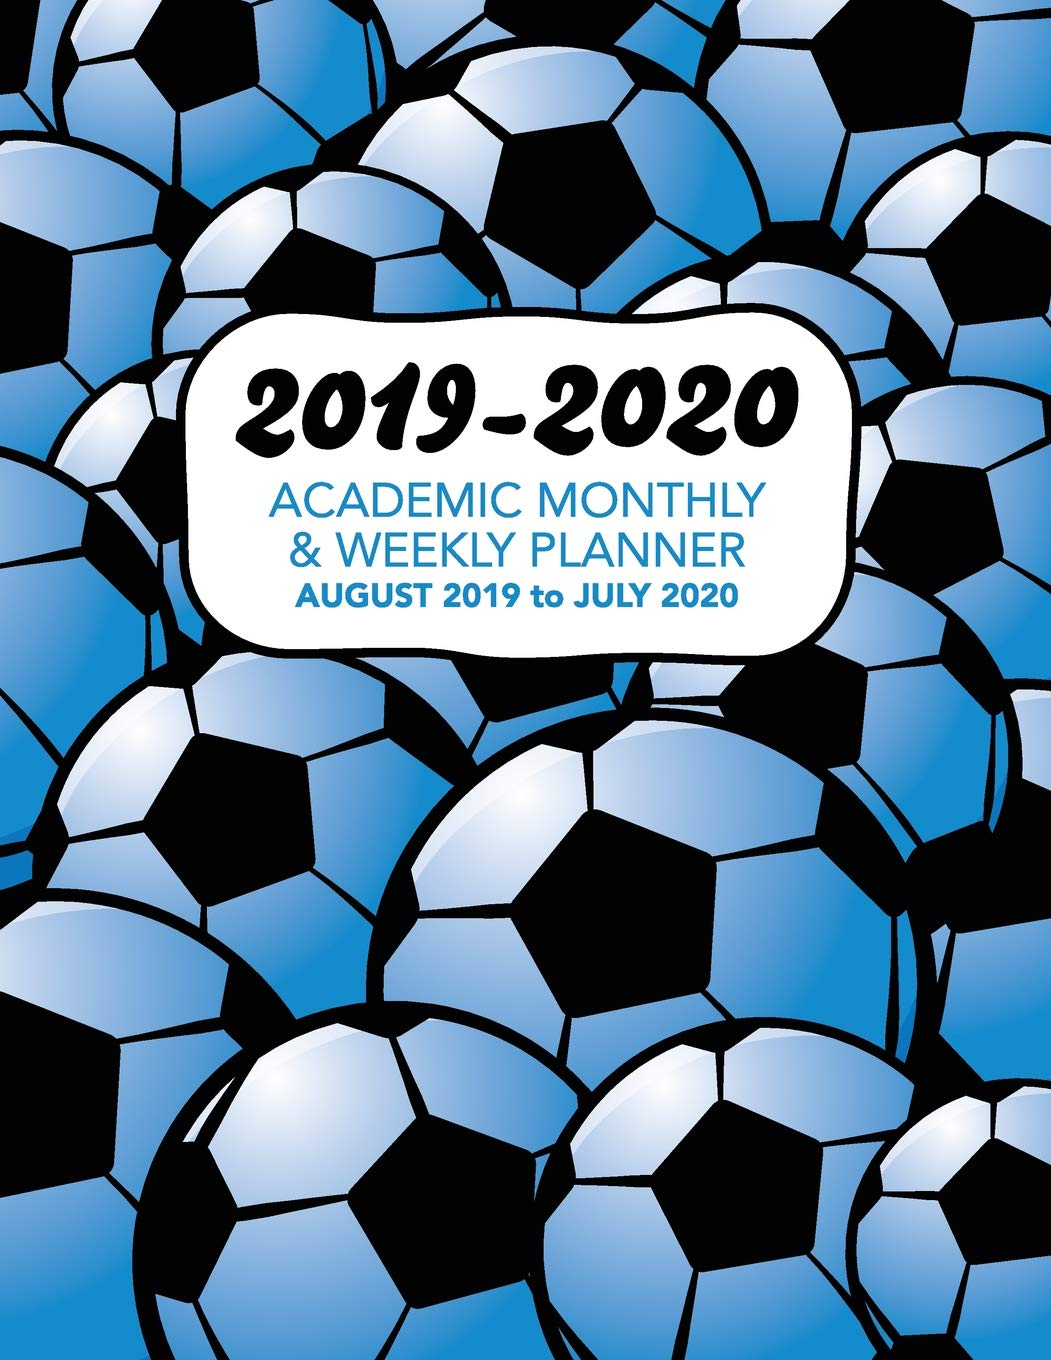 Umkc Academic Calendar.2019 2020 Academic Monthly Weekly Planner August 2019 To July